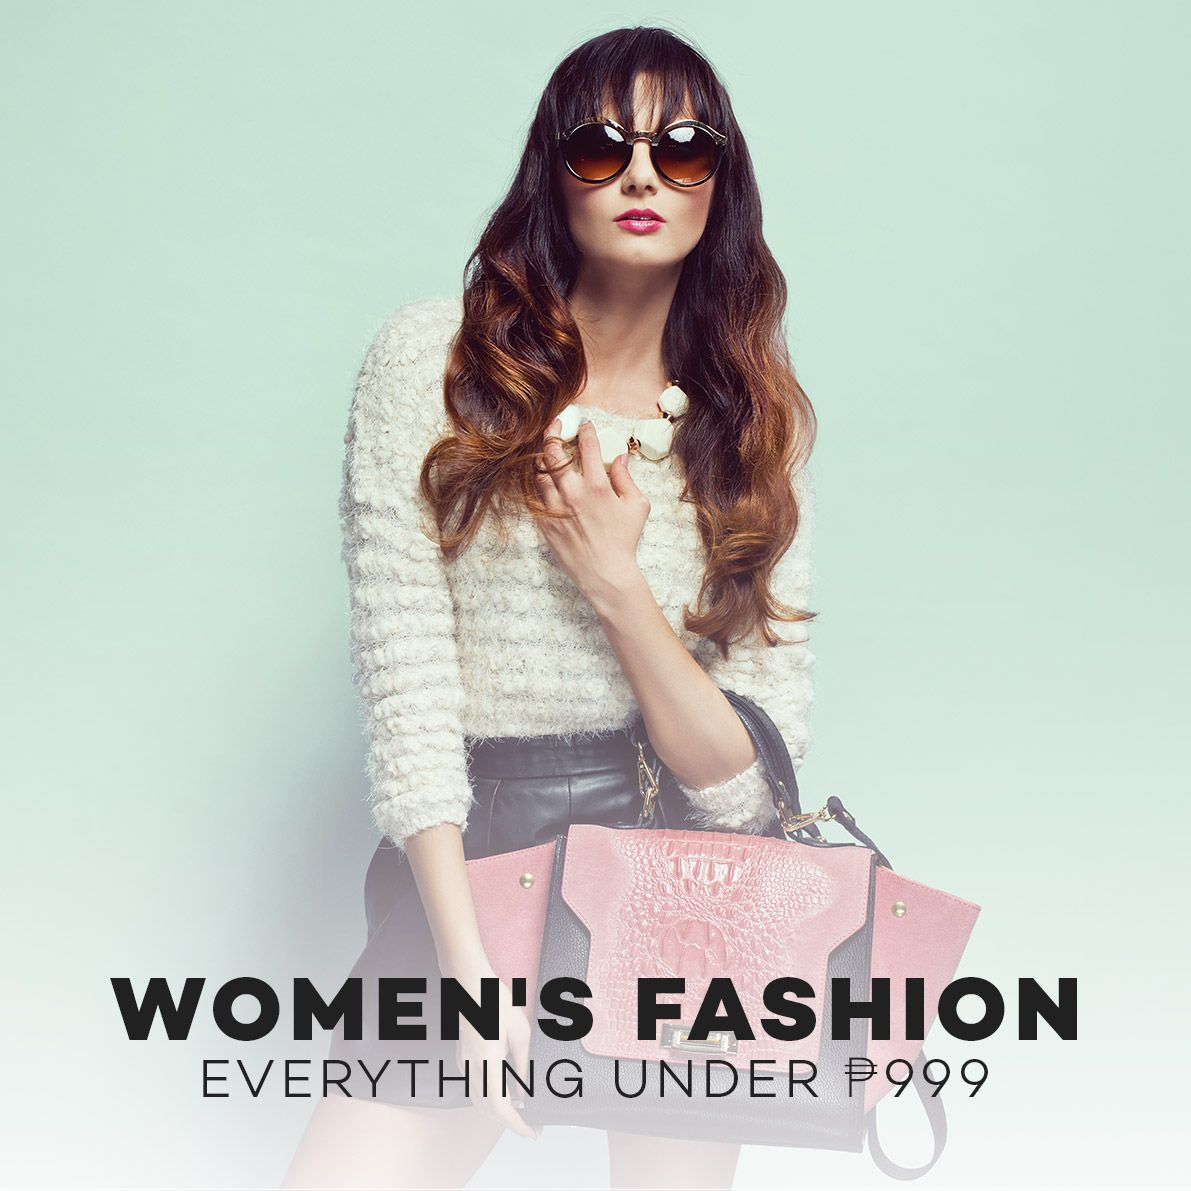 Fashion for Women for sale - Fashion Clothing brands